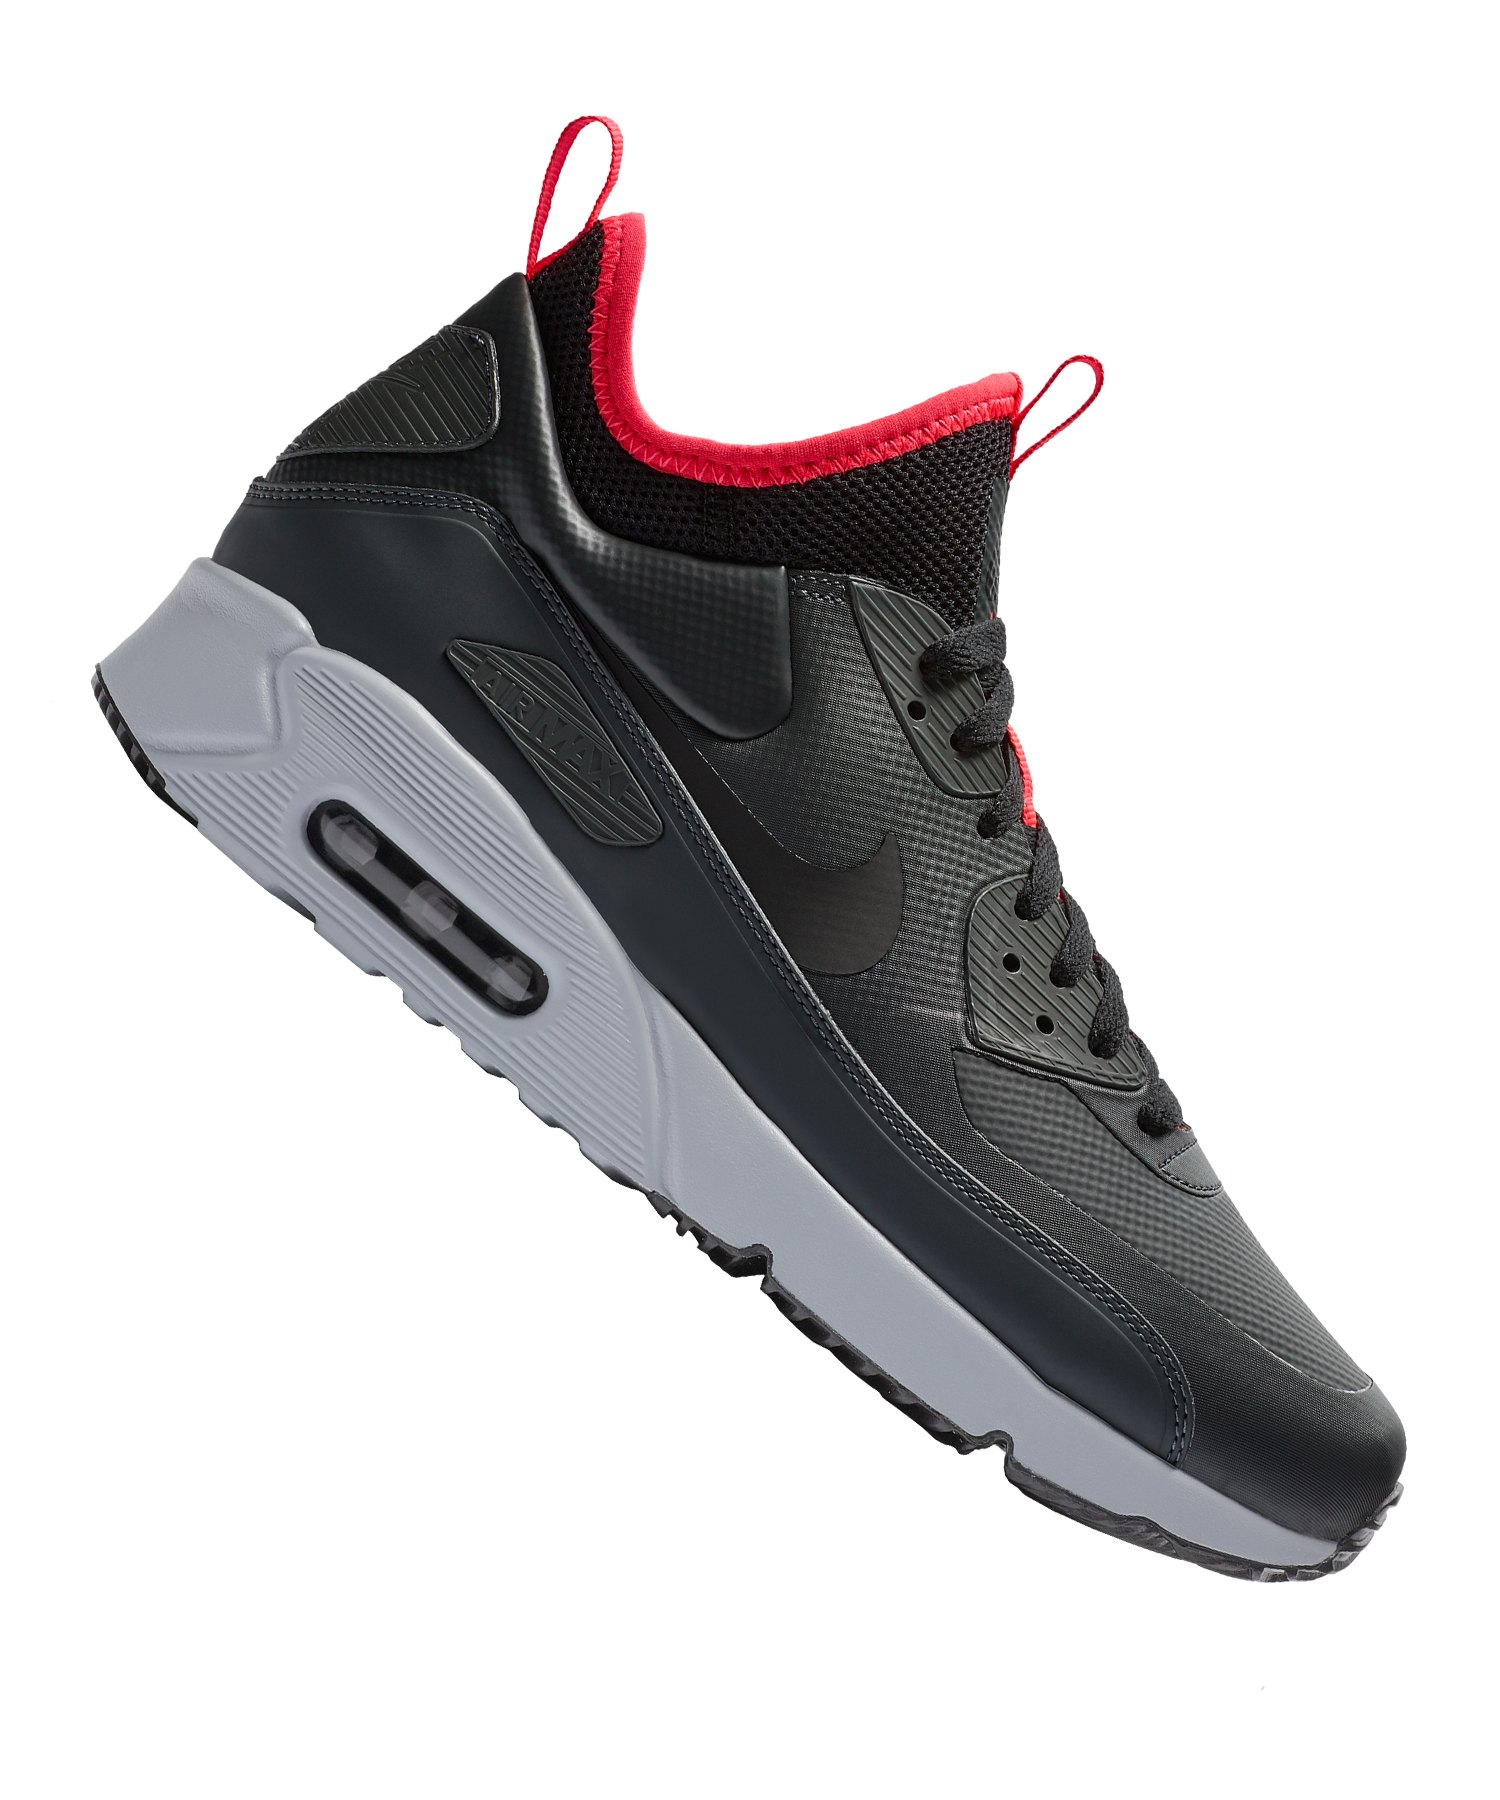 Nike Air Max 90 Ultra Mid Winter Sneaker F003 |Streetstyle ...